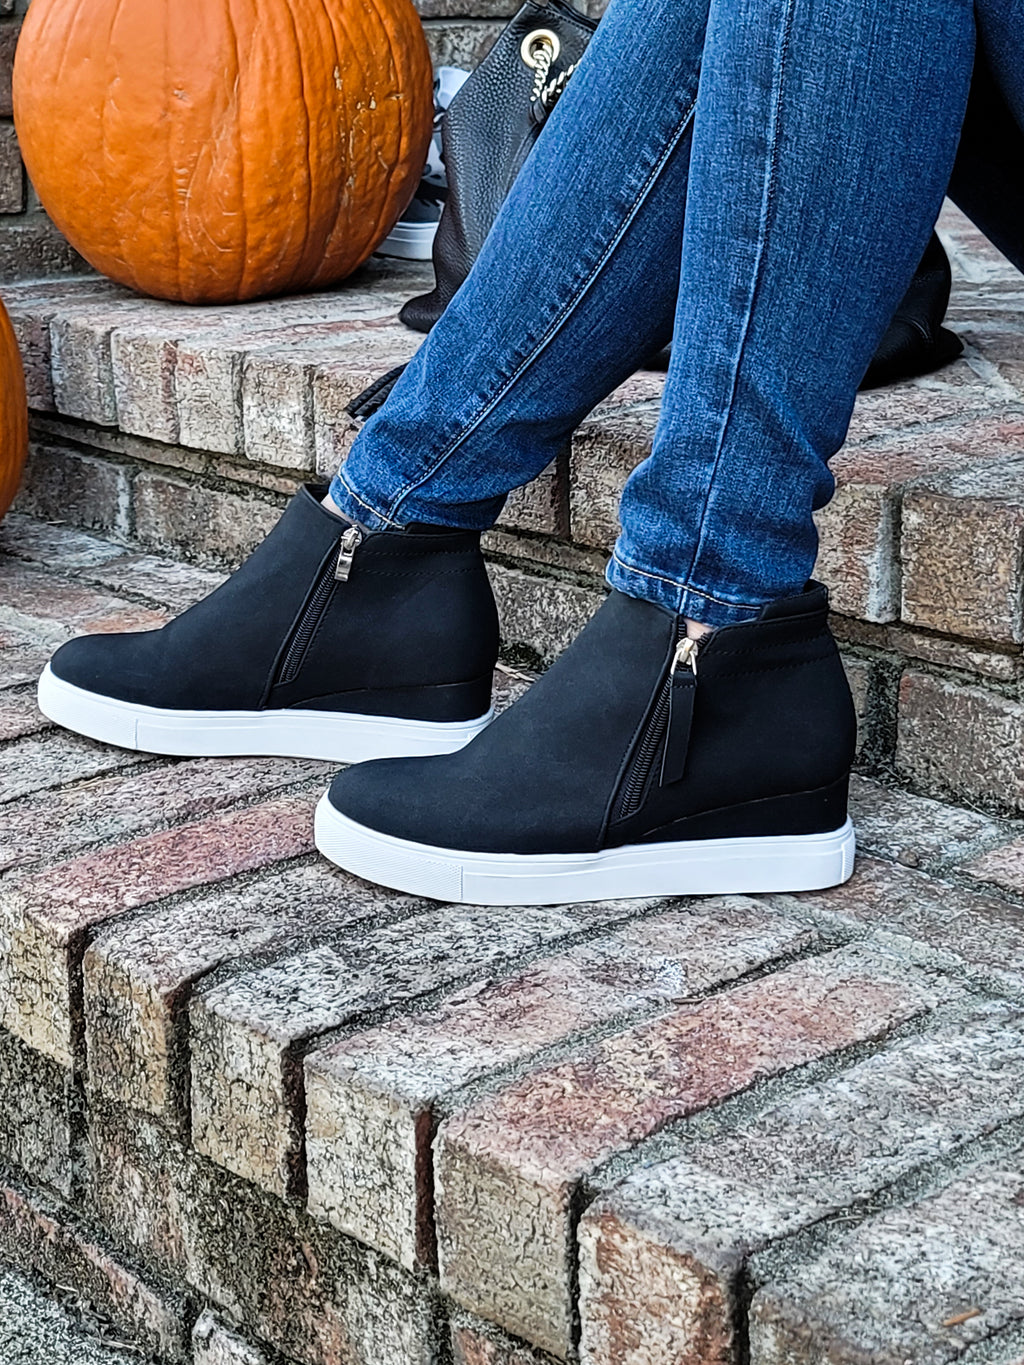 Come As You Are Black Platform Shoes